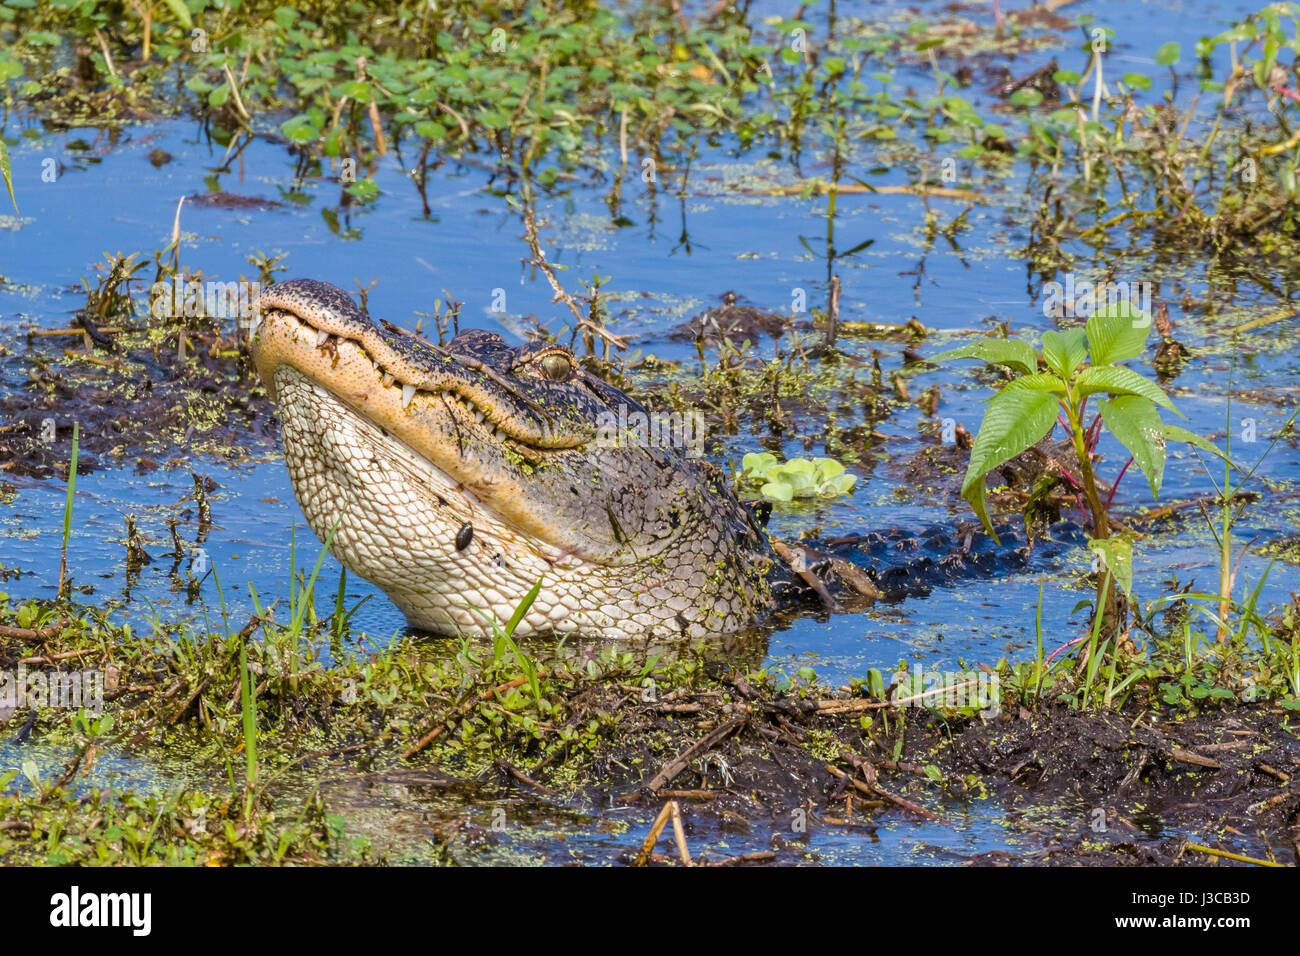 Alligator at Circle B Bar Reserve in Polk County in Lakeland Florida - Stock Image